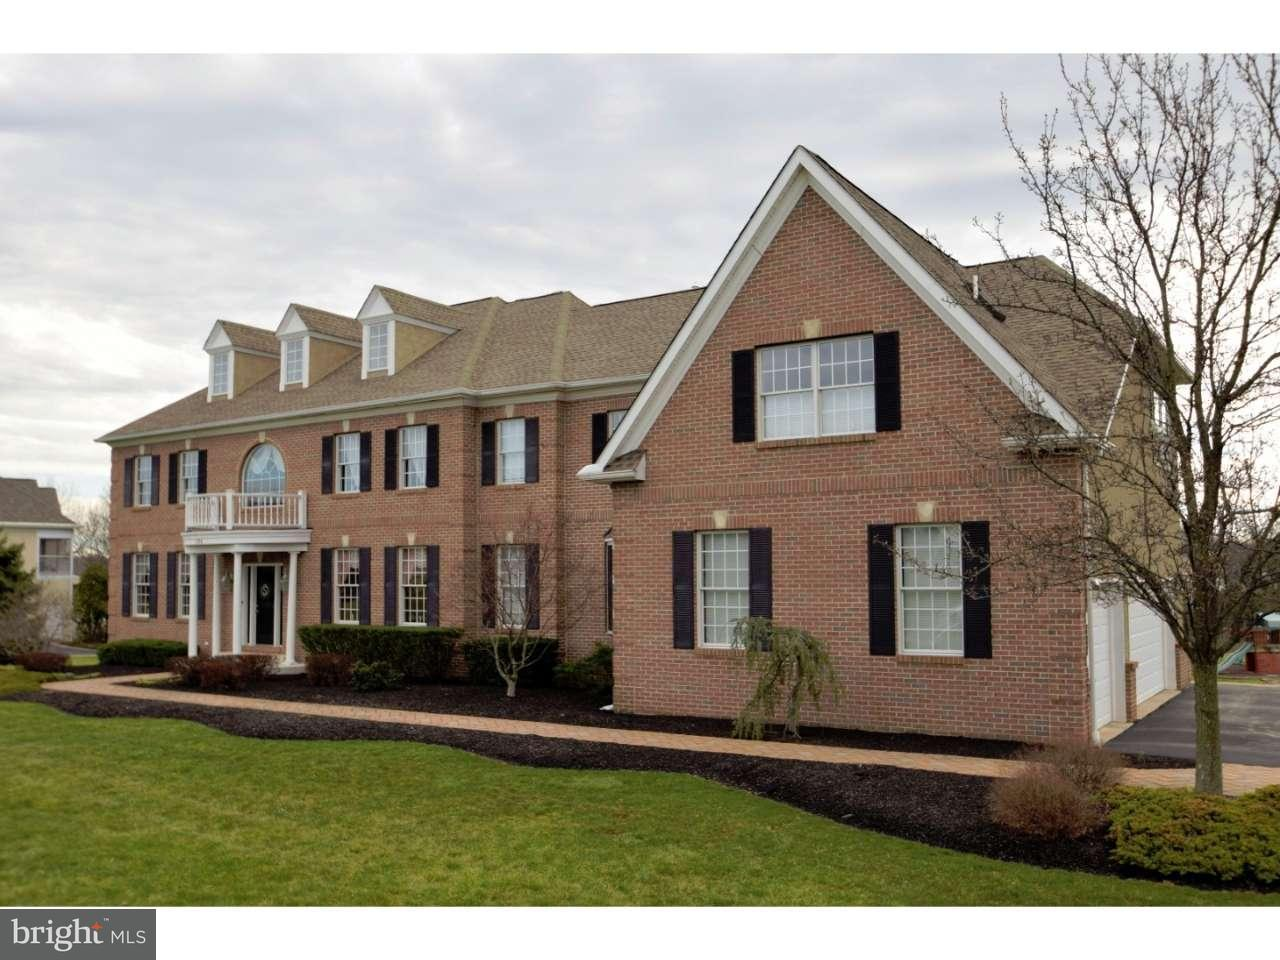 Single Family Home for Sale at 1798 HAWKS NEST Collegeville, Pennsylvania 19426 United States